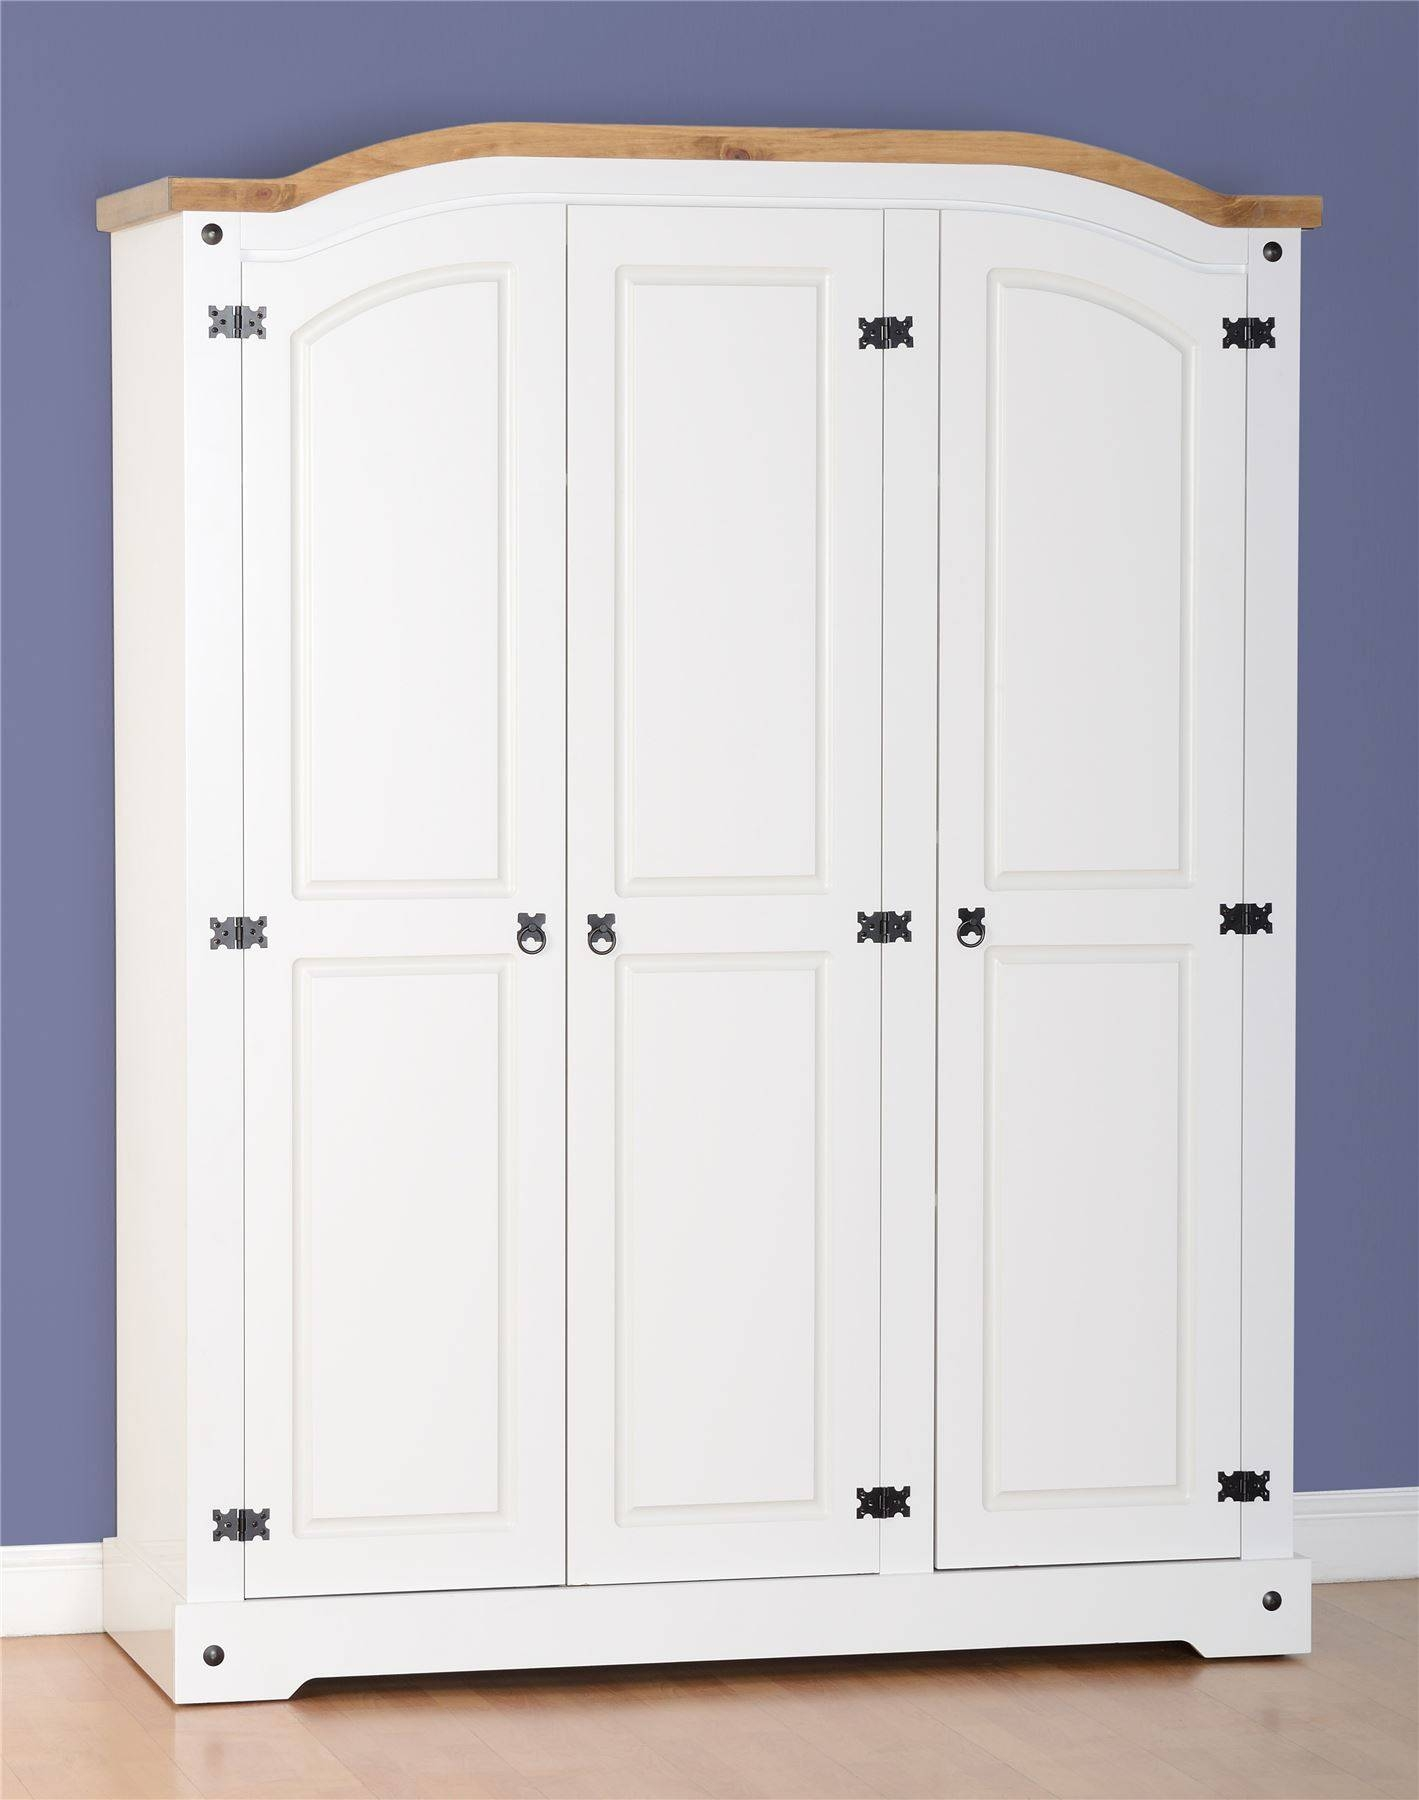 Popular Photo of Corona 3 Door Wardrobes